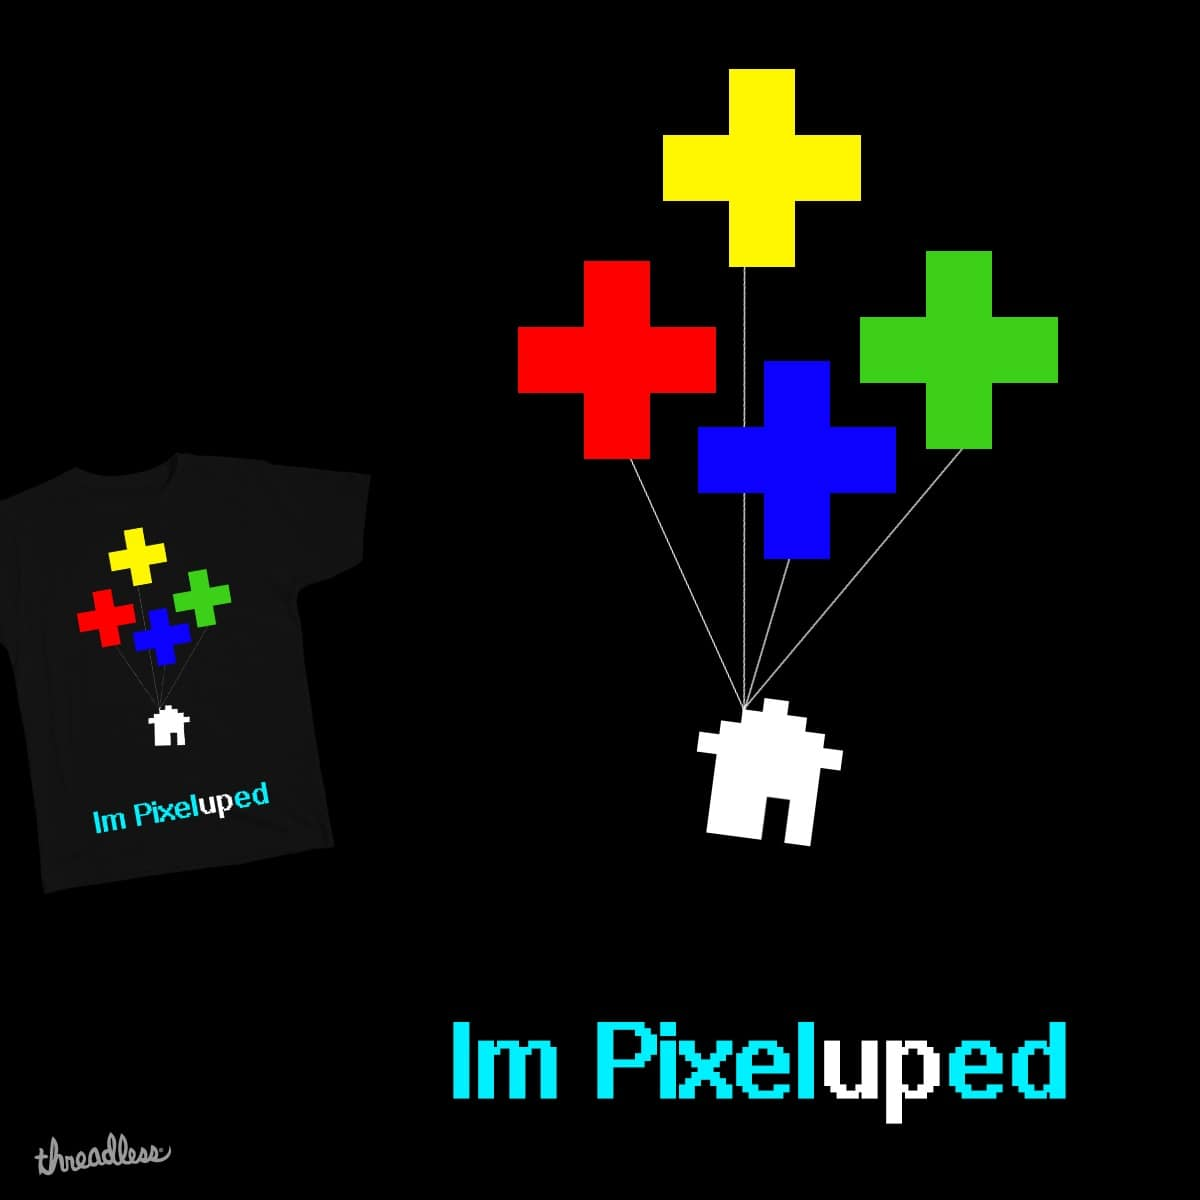 im pixelUPed by SR-GED on Threadless